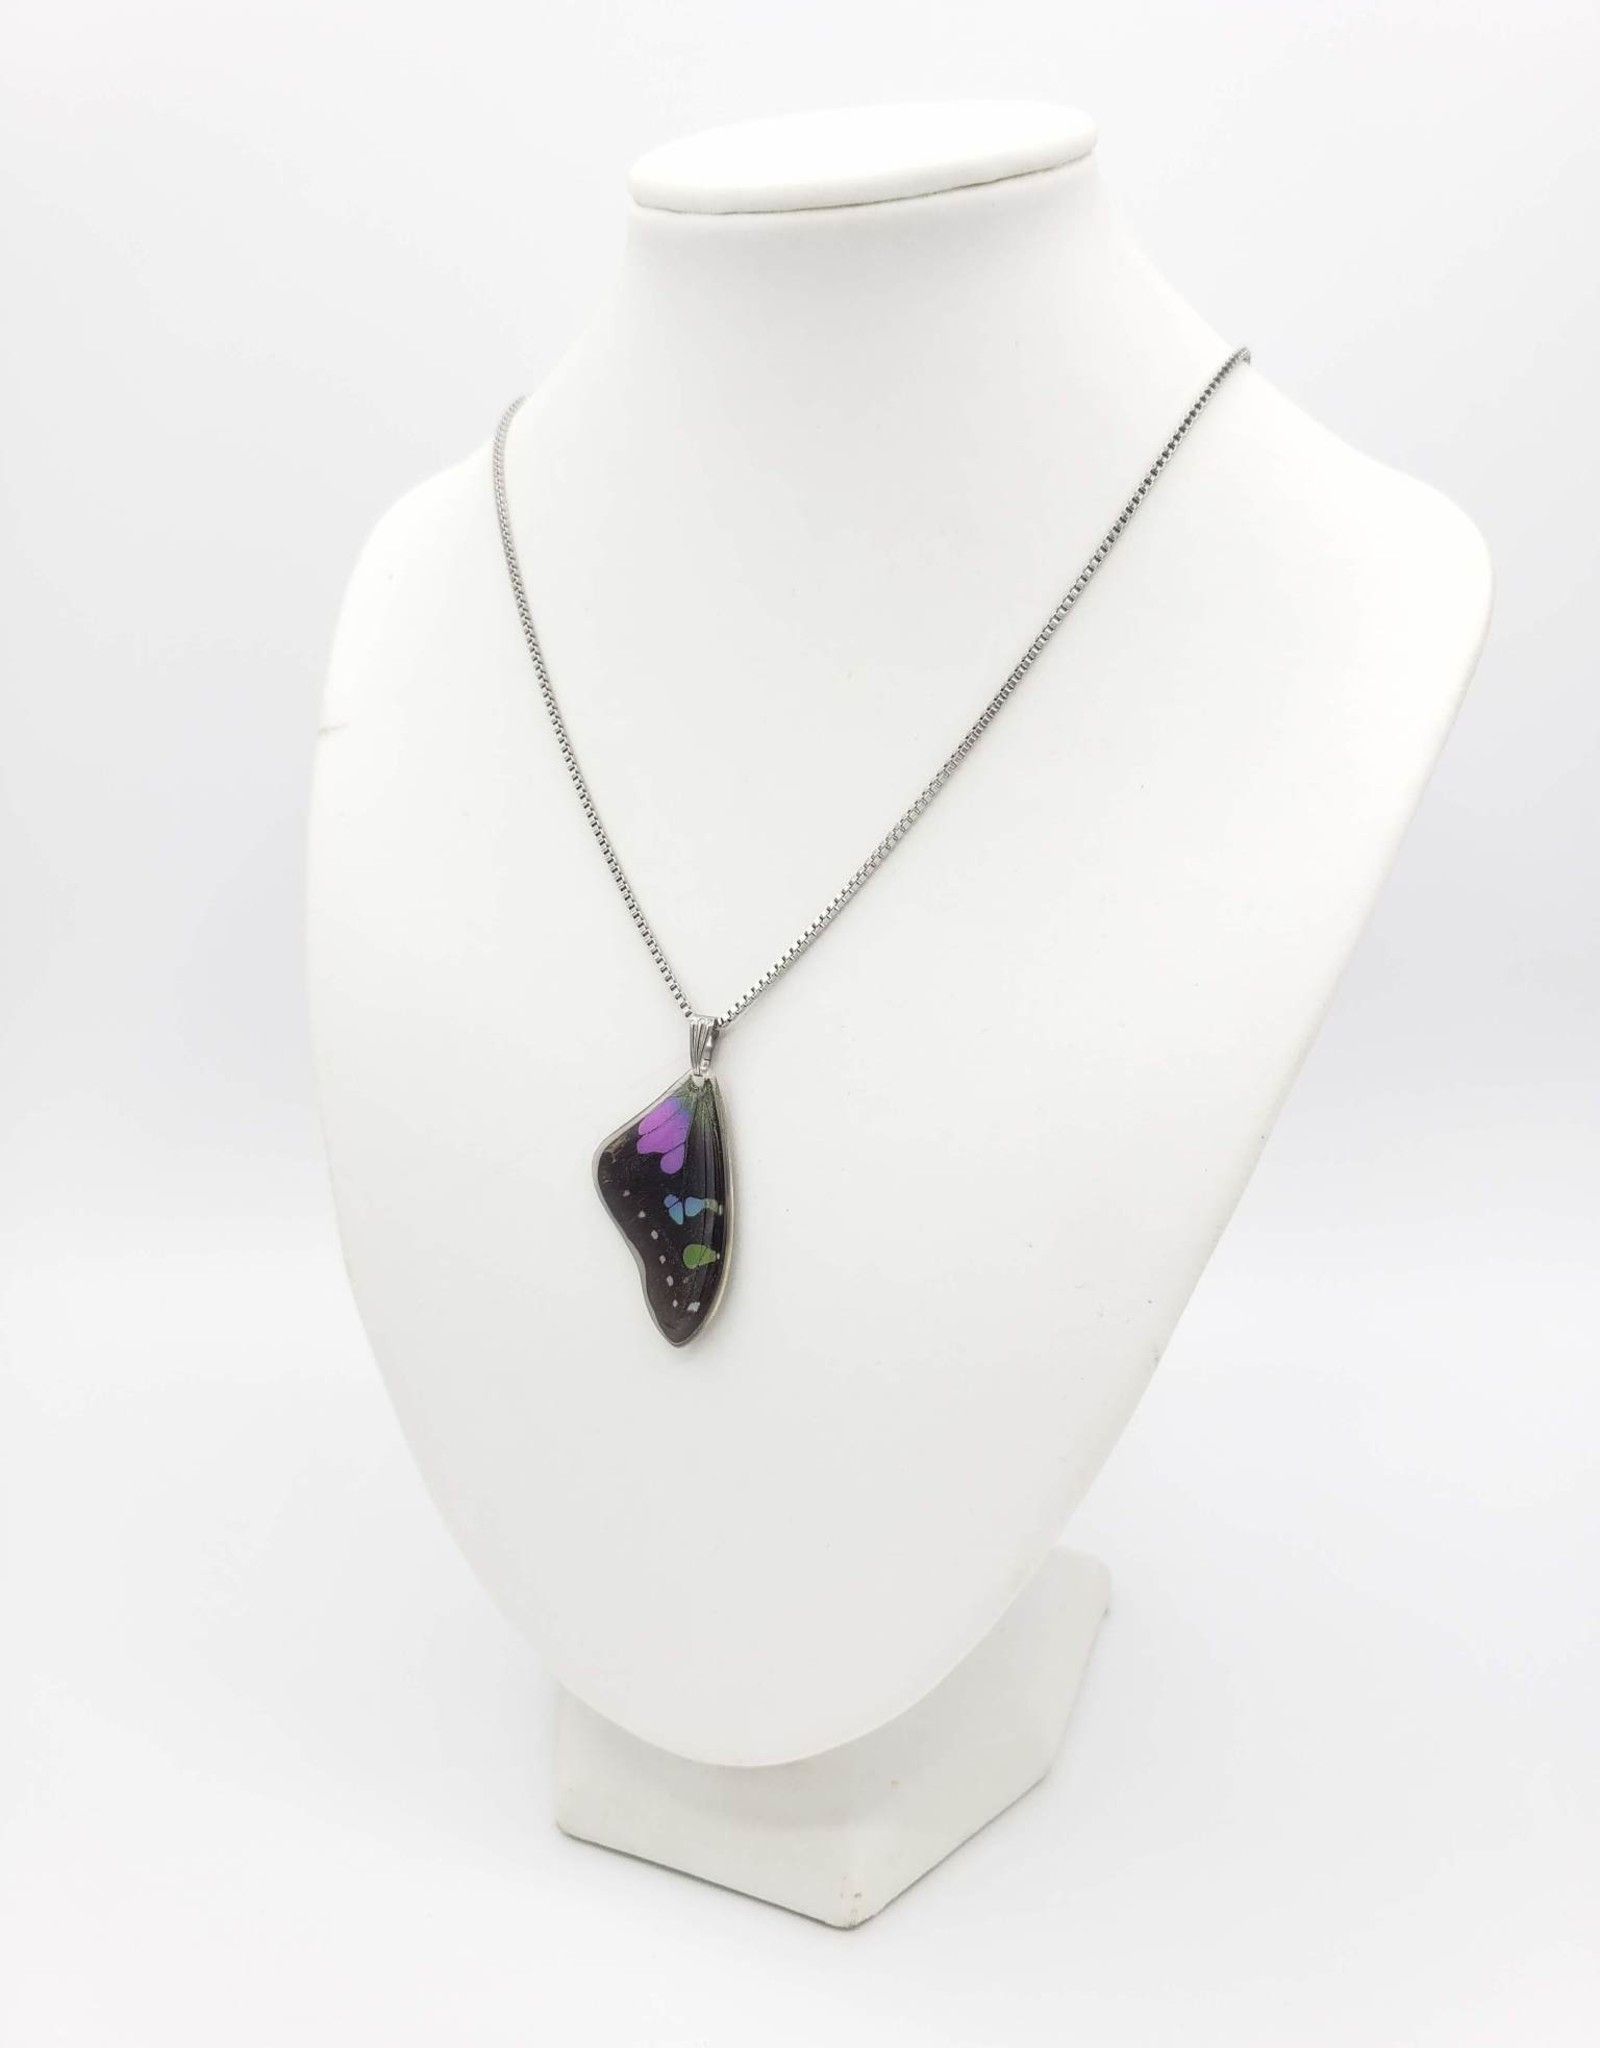 Asana Natural Arts Graphium Weiskei Resin Coated Butterfly Wing Necklace